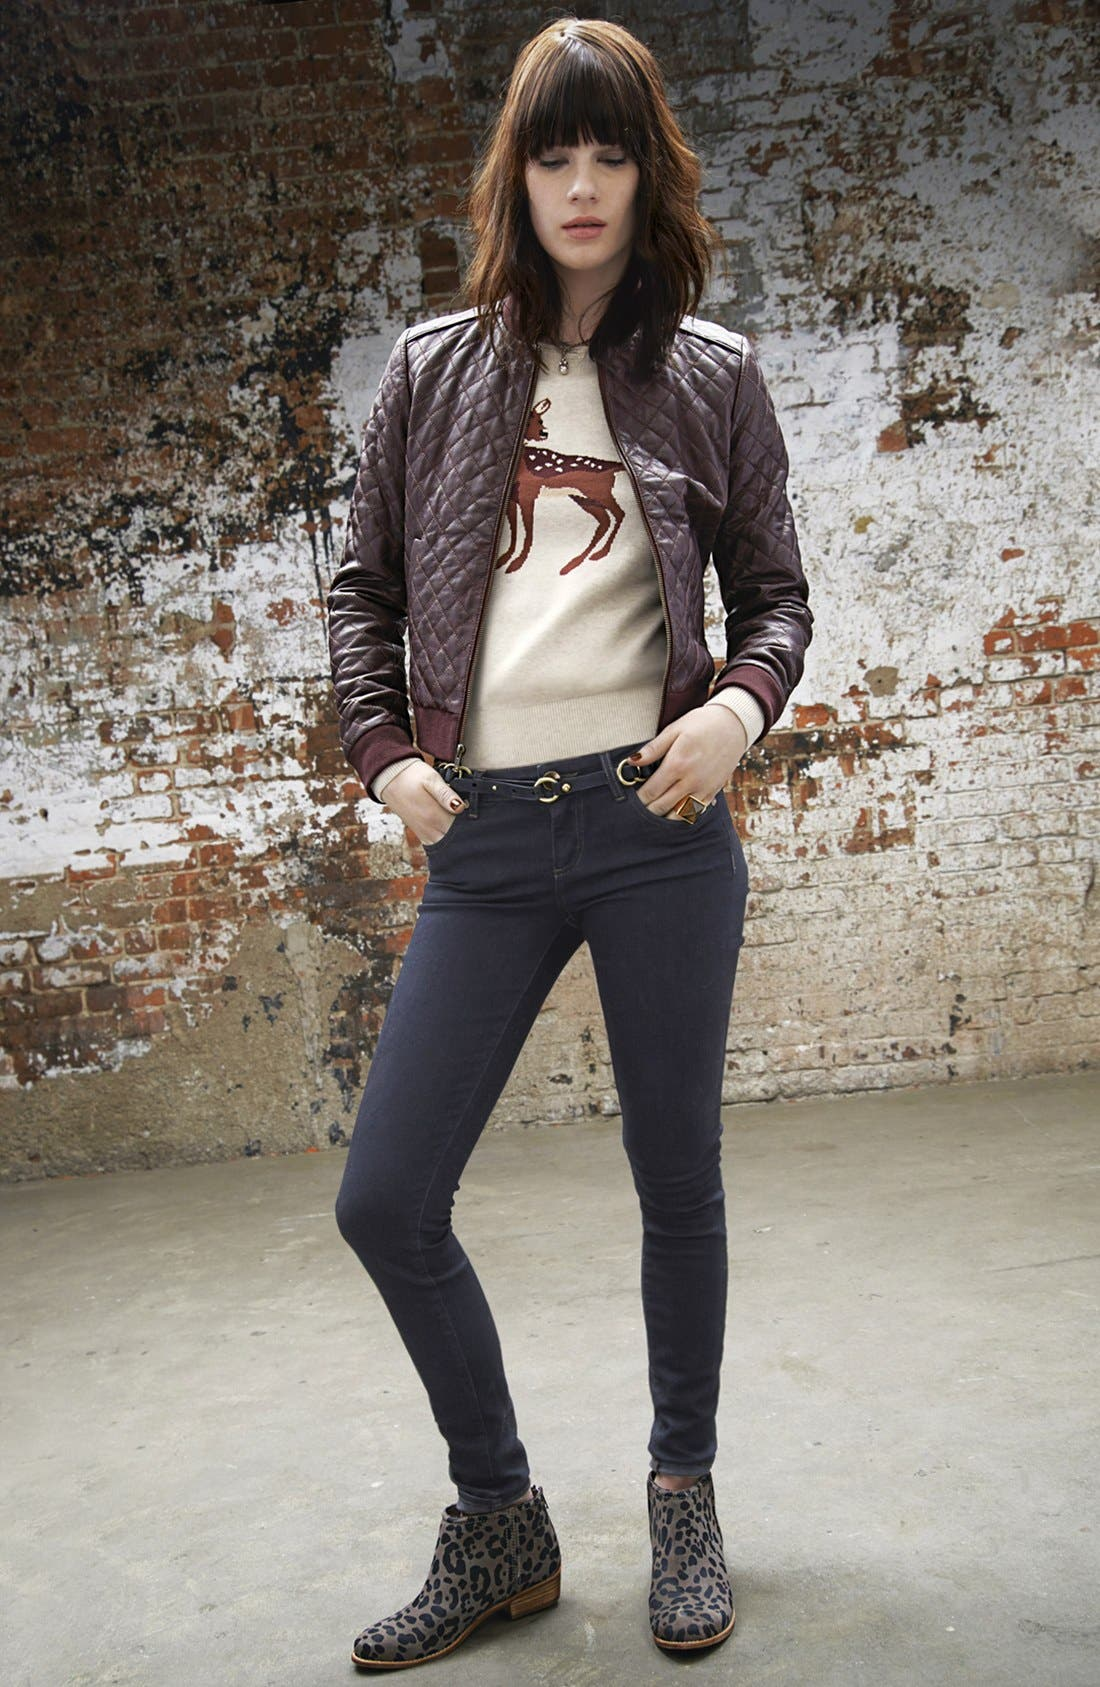 Main Image - Halogen® Leather Bomber Jacket, Sweater & KUT from the Kloth Jeans